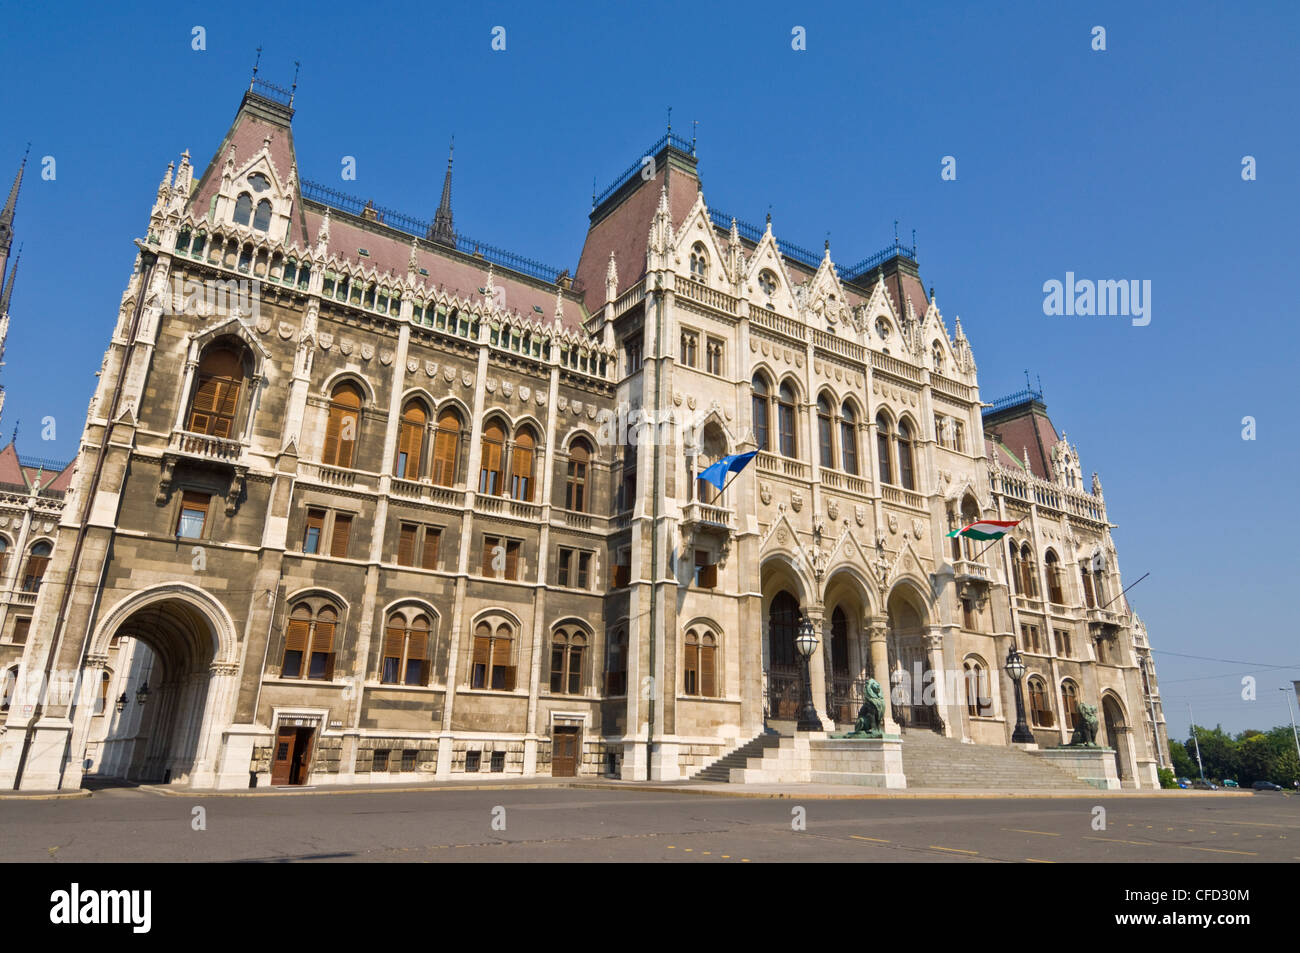 The neo-gothic Hungarian Parliament,front entrance, designed by Imre Steindl, Budapest, Hungary, Europe - Stock Image